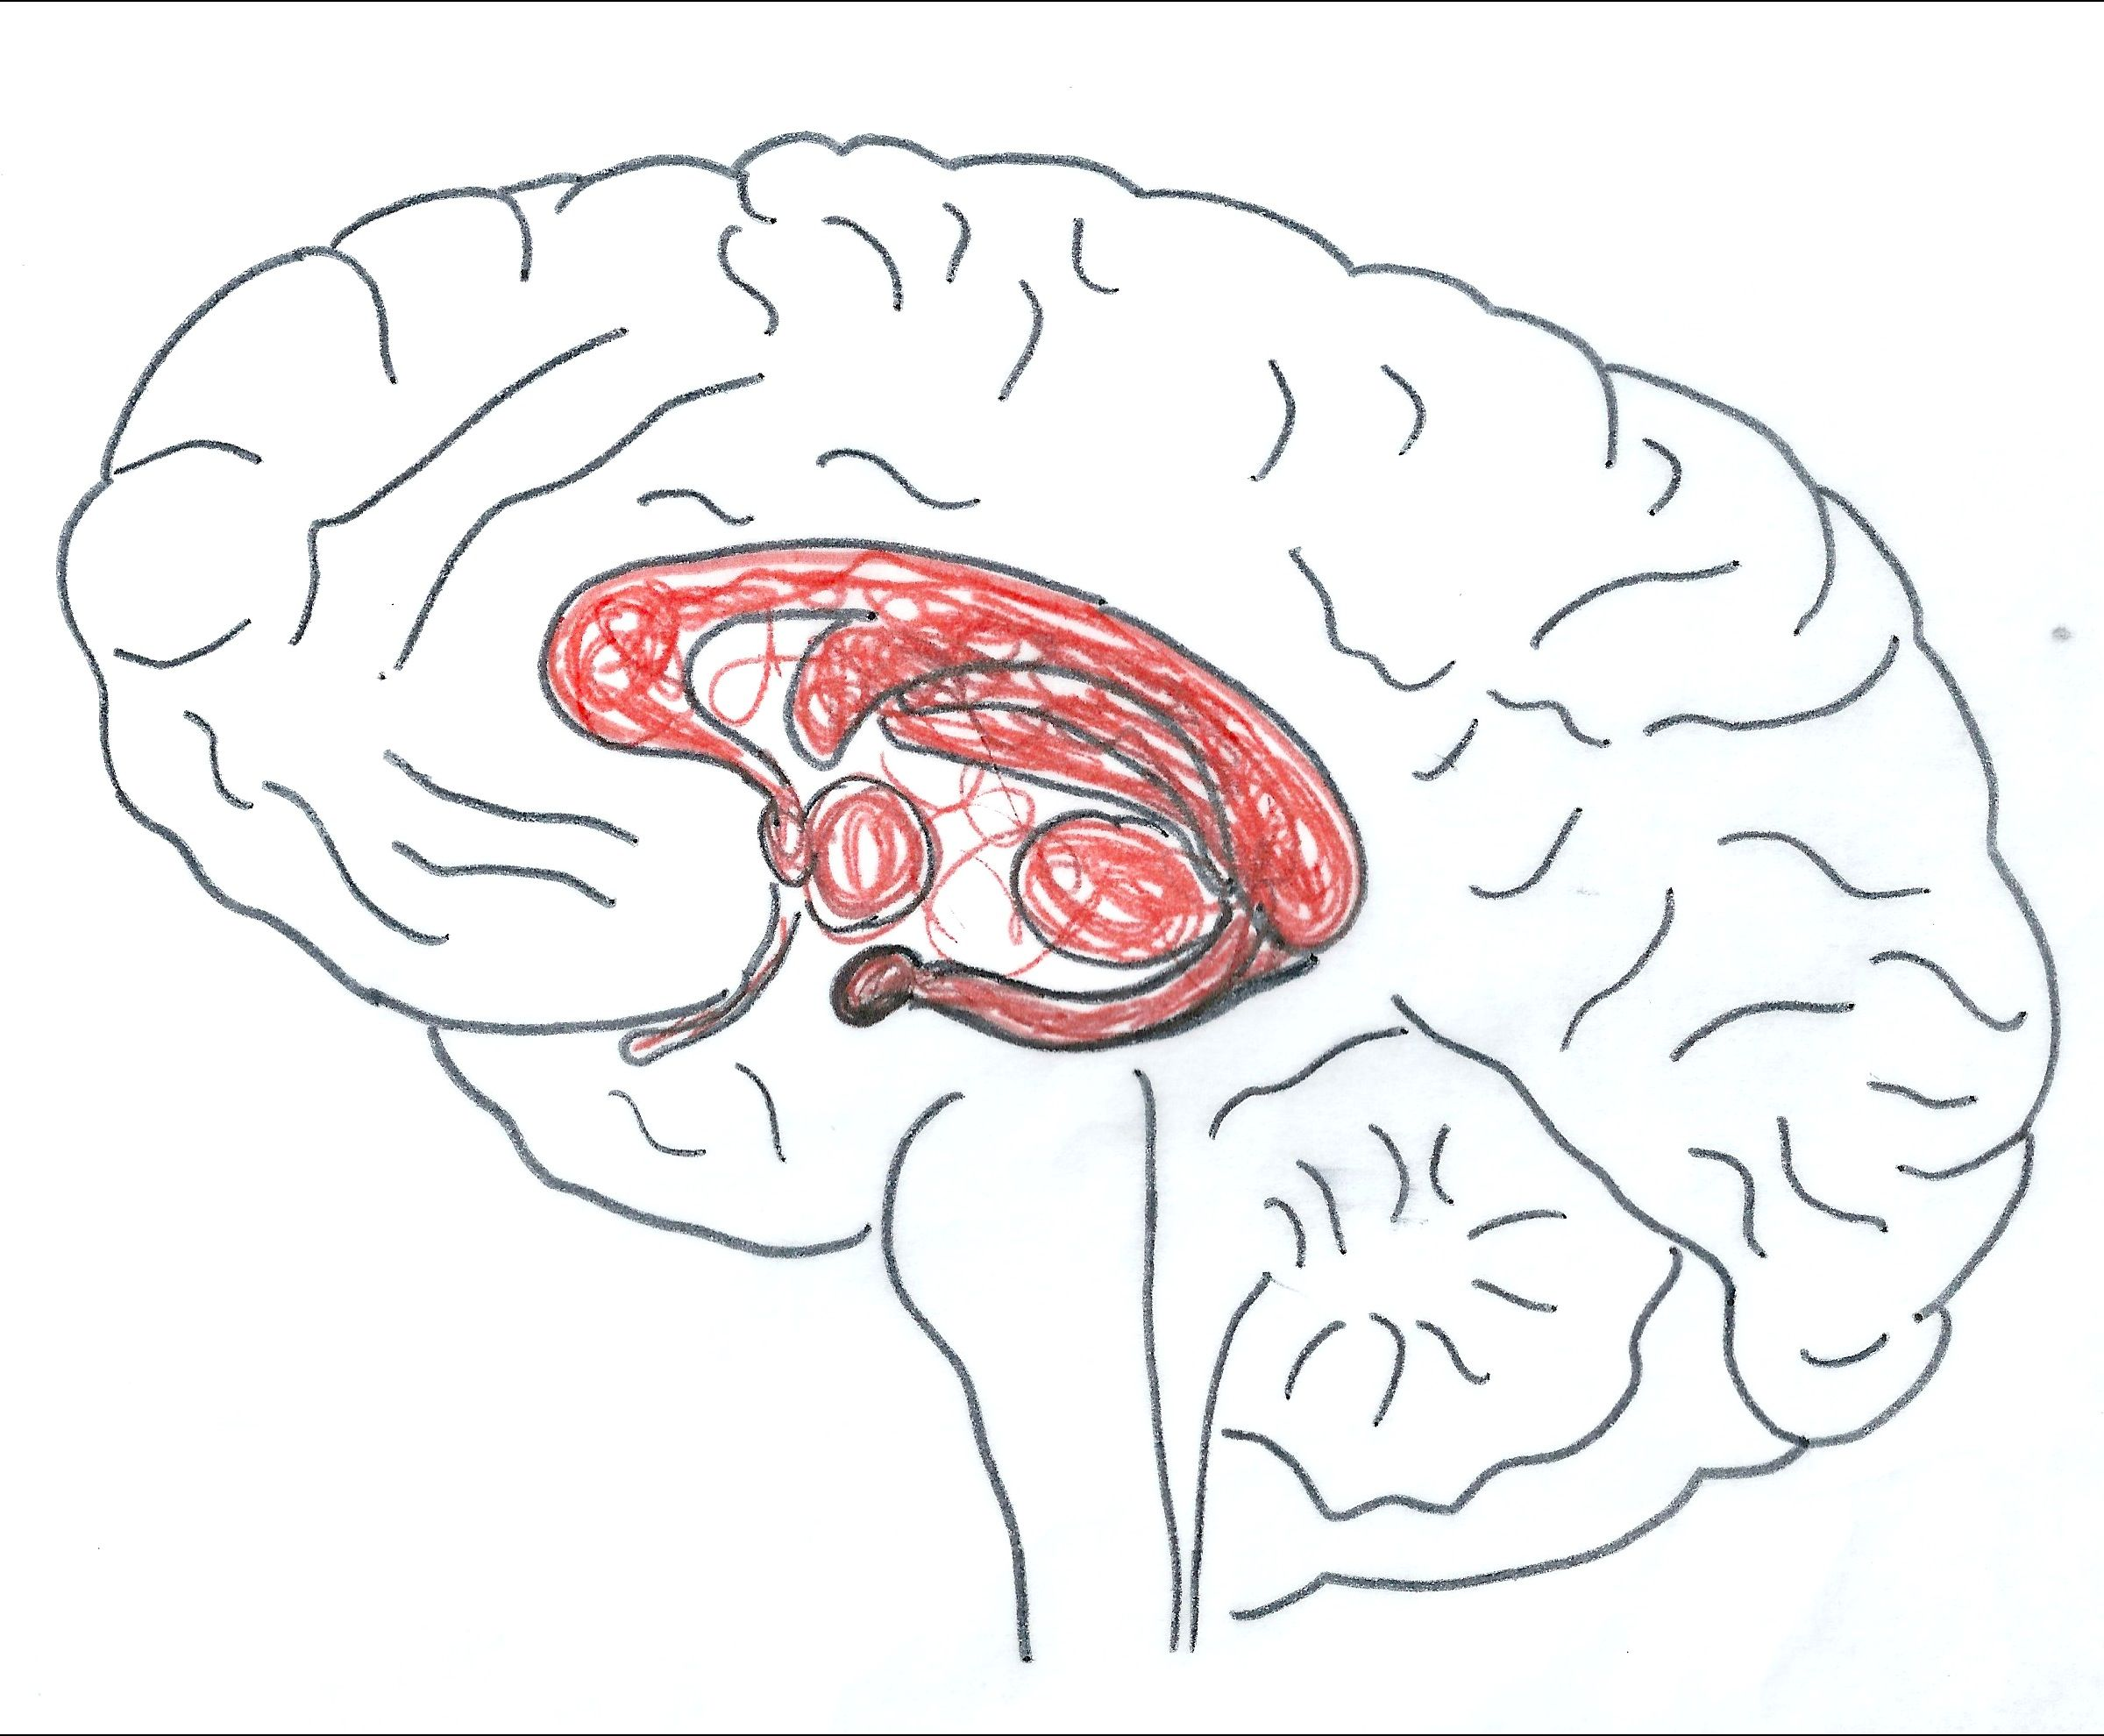 Pic Showing The Limbic System And Cortex Used In A